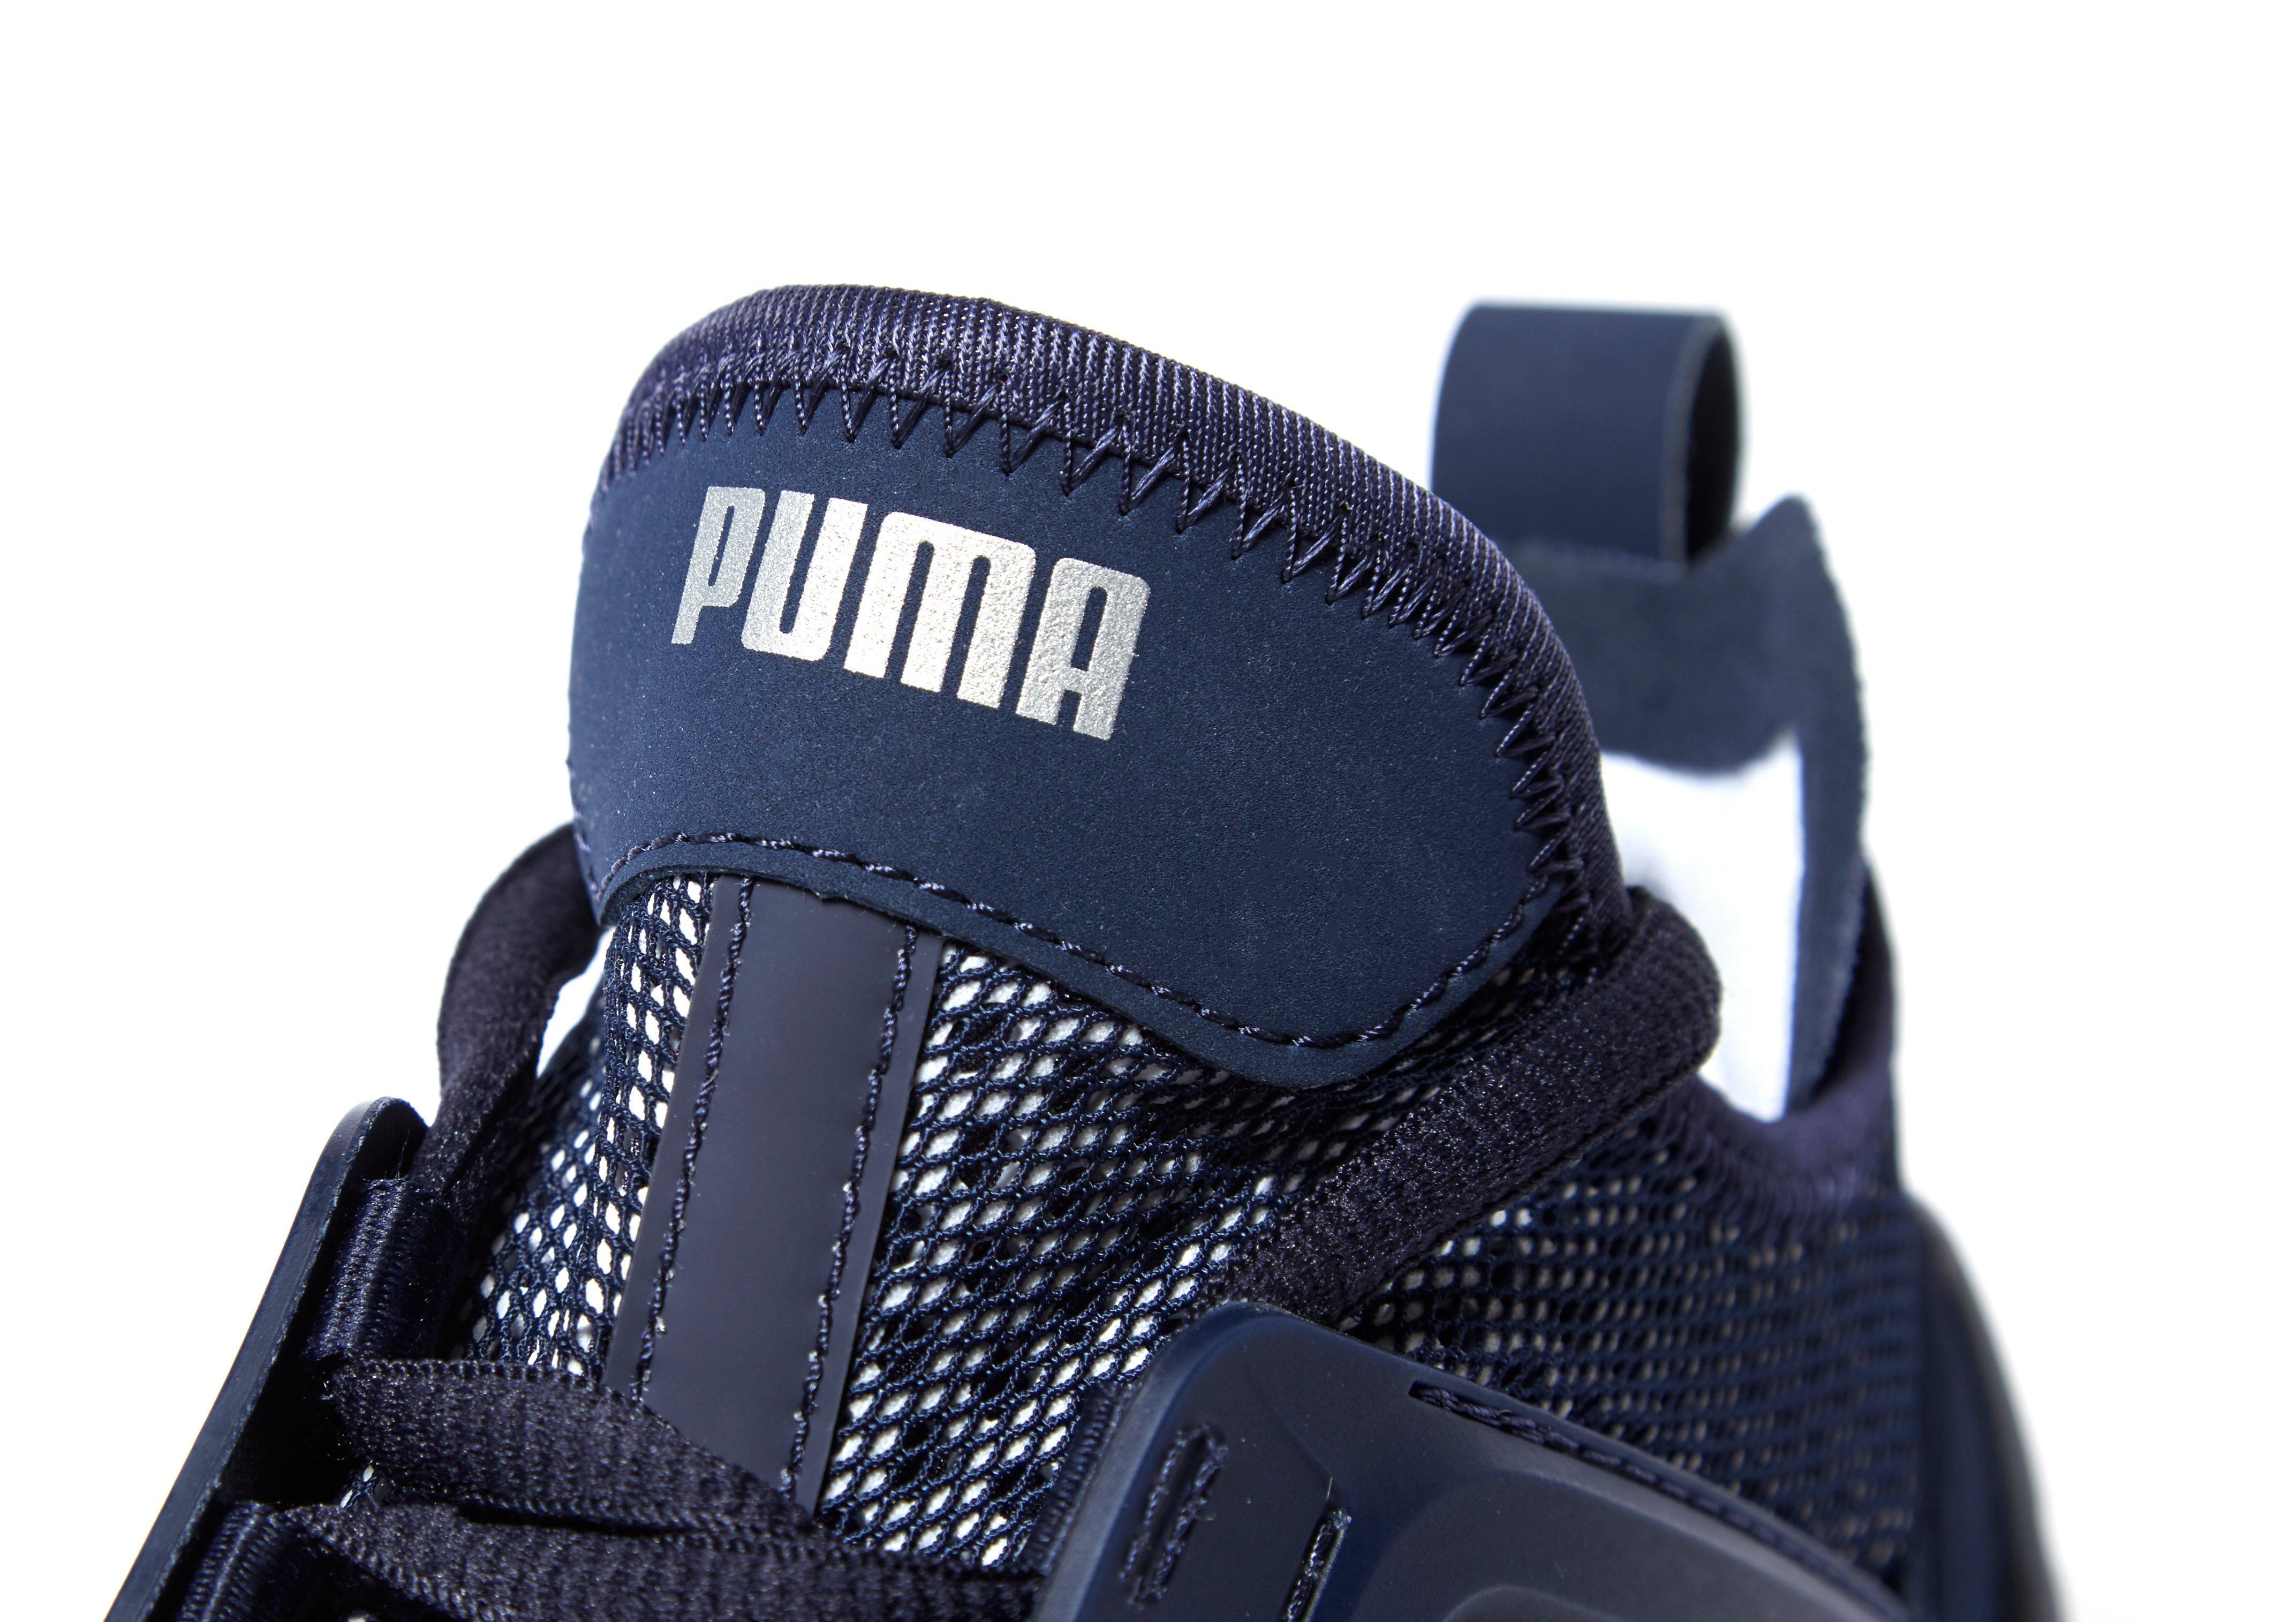 PUMA Ignite Limitless Nrgy Trainers in